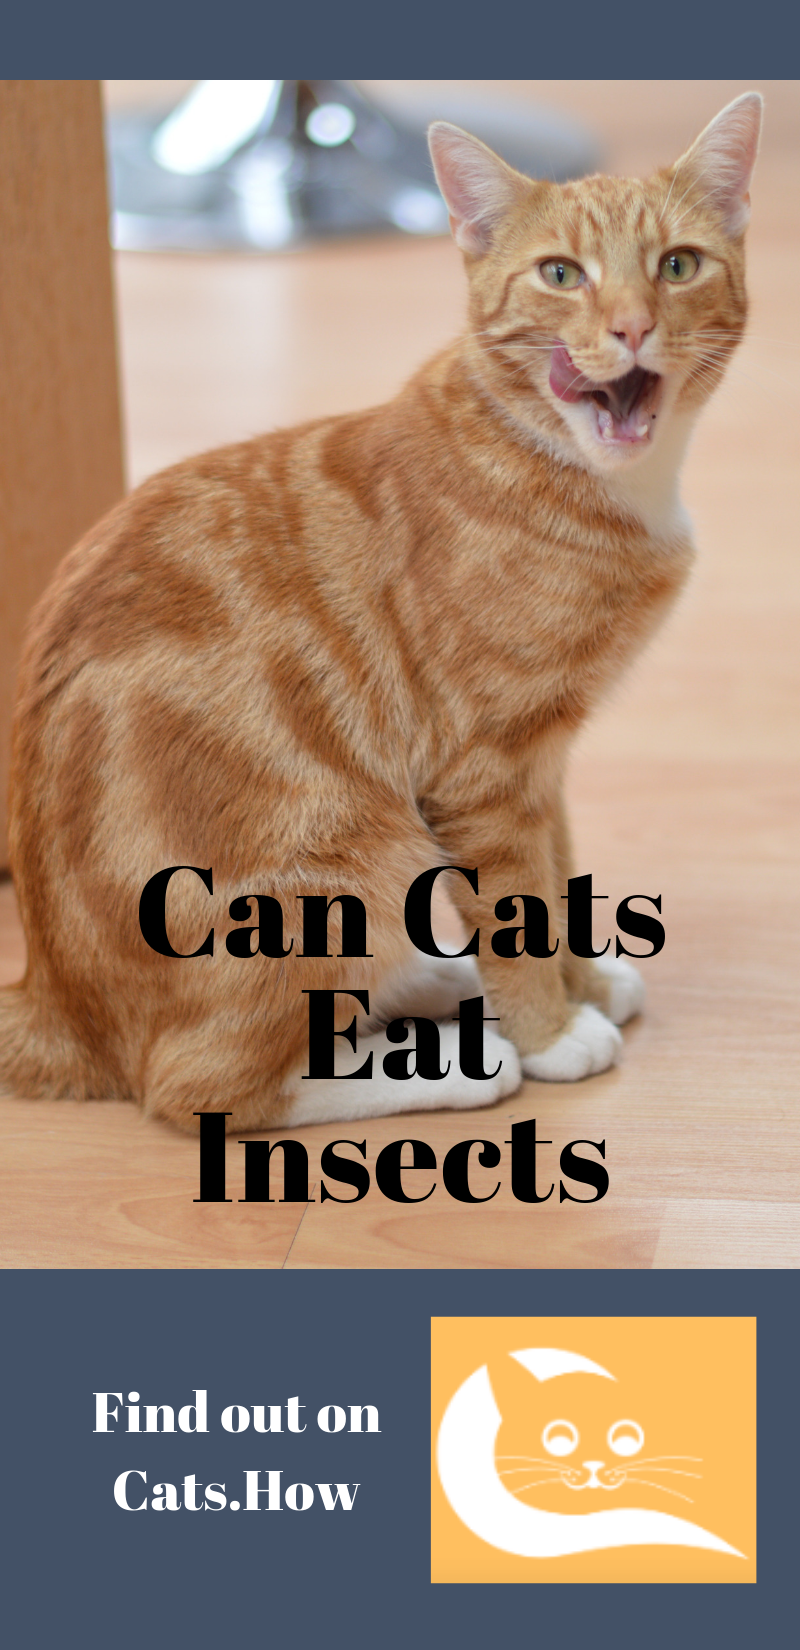 Can Cats Eat Insects Cats, Cat facts, Cat behavior